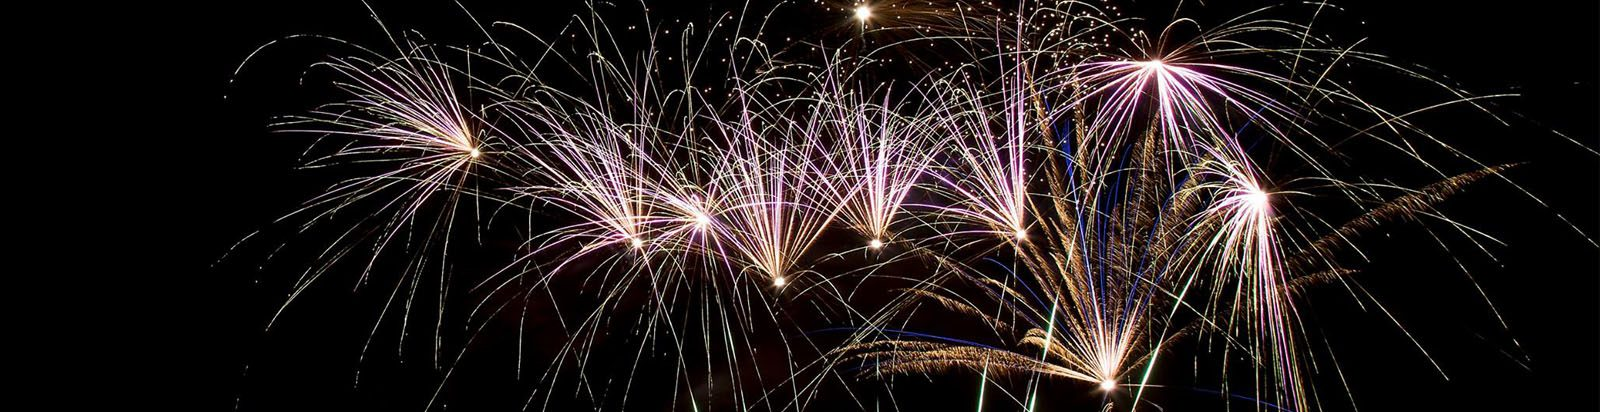 Firework Spectacular 2017 – Thank You!